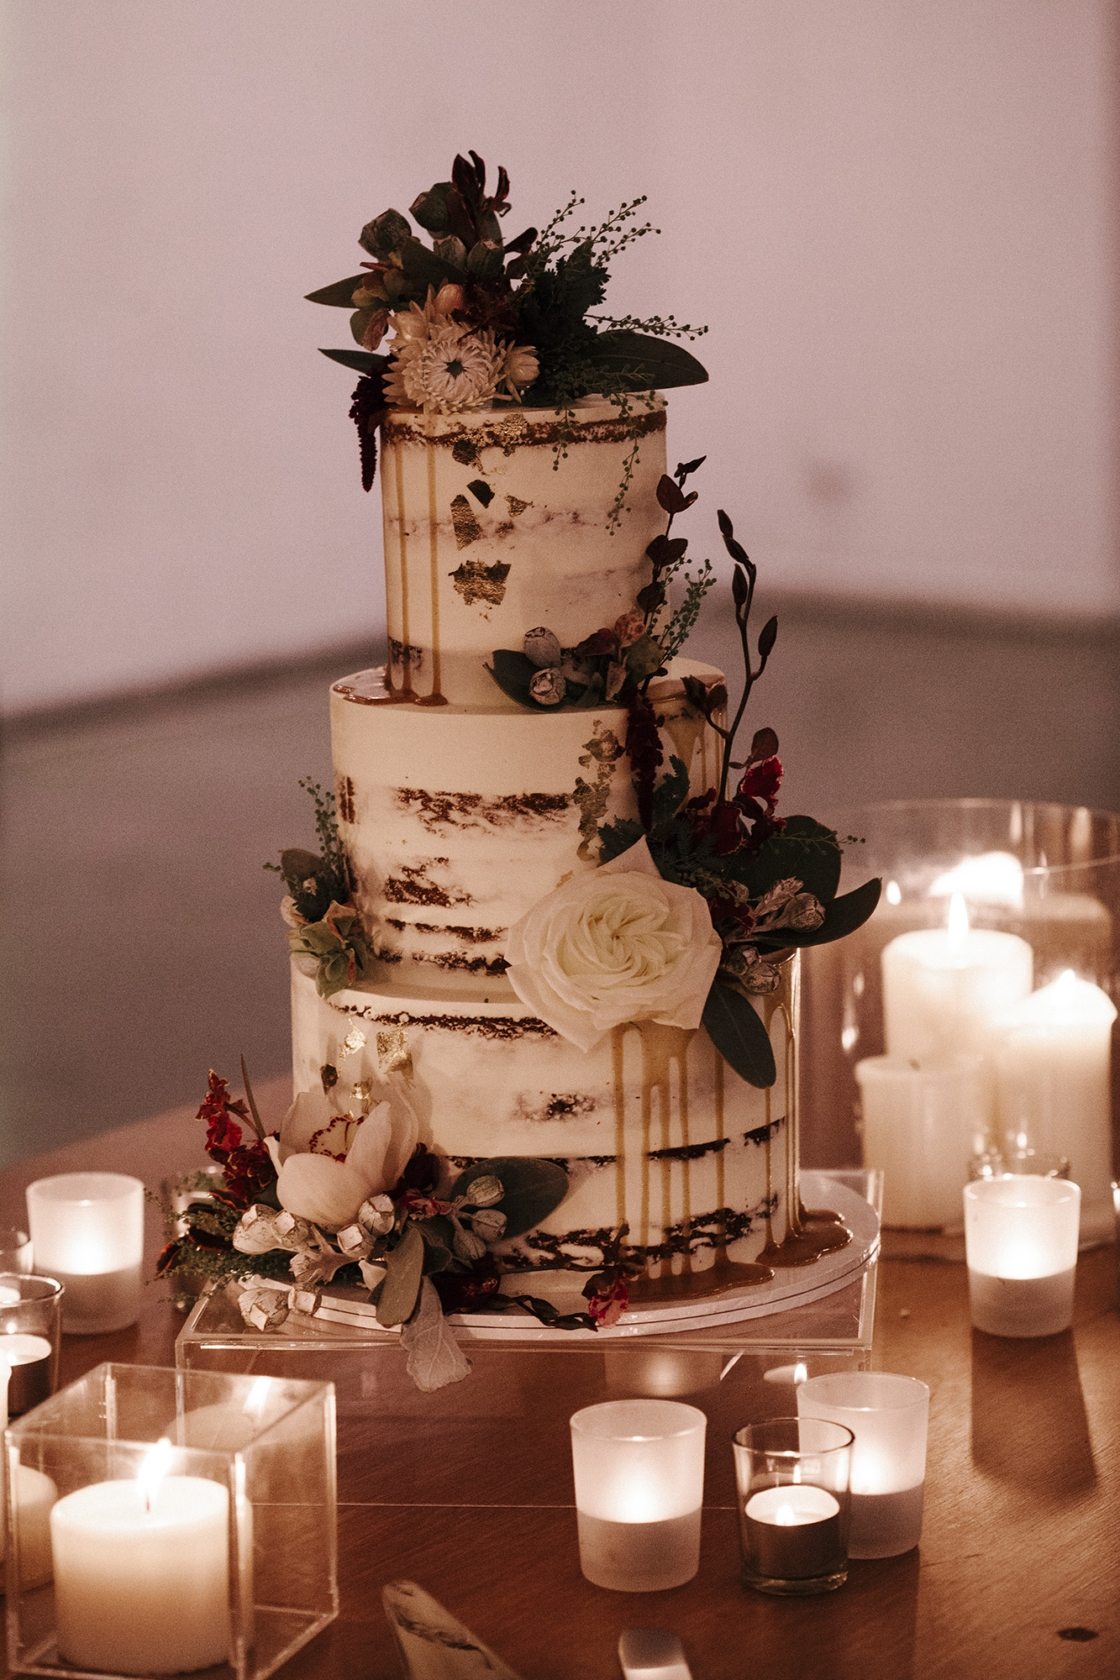 Top 10 Semi Naked Wedding Cakes We Ve Ever Seen Wednova Blog